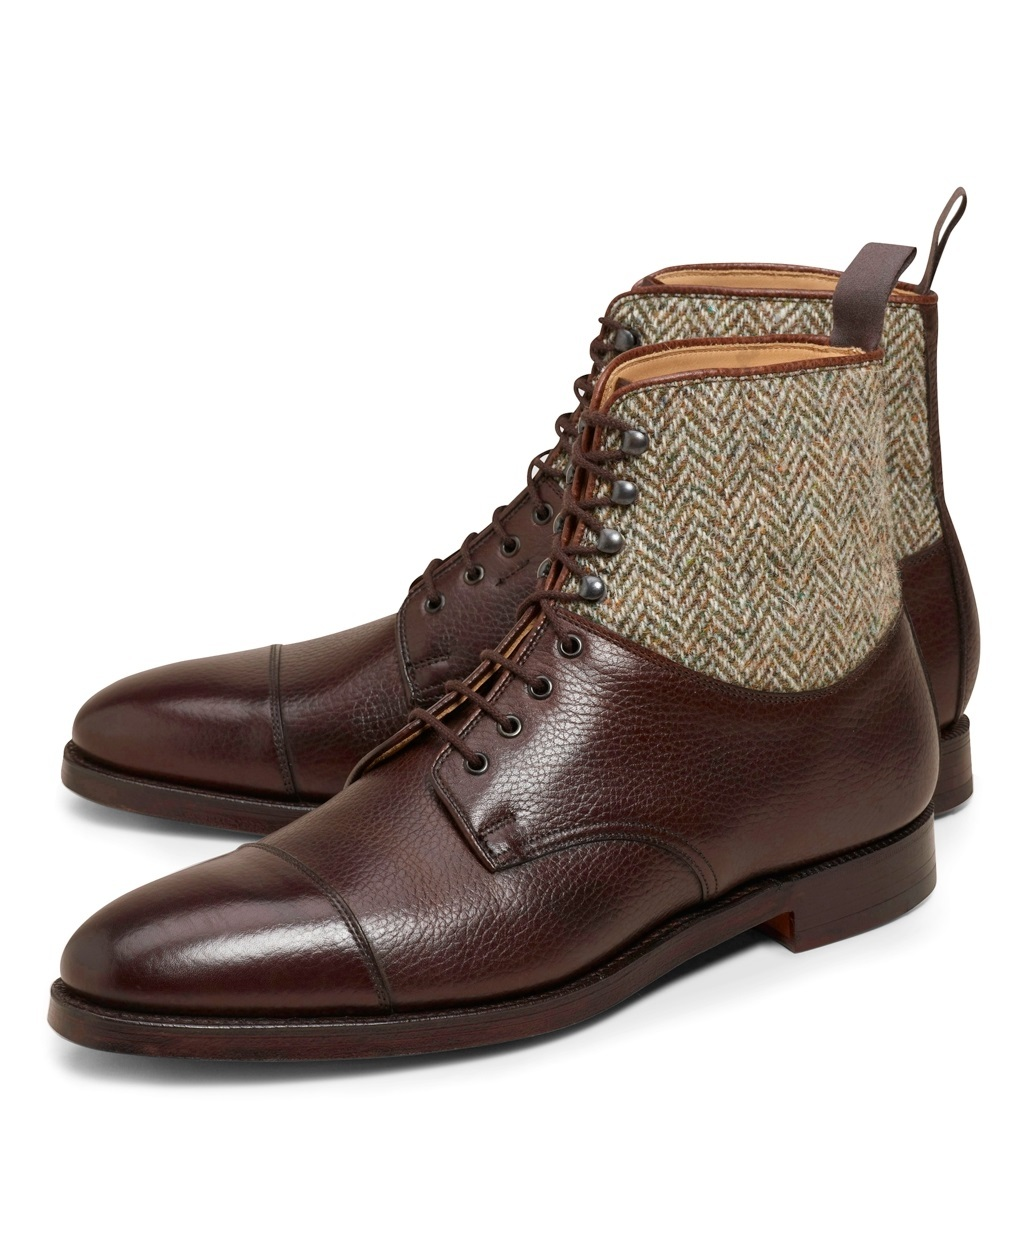 Polish Brown Dress Shoes